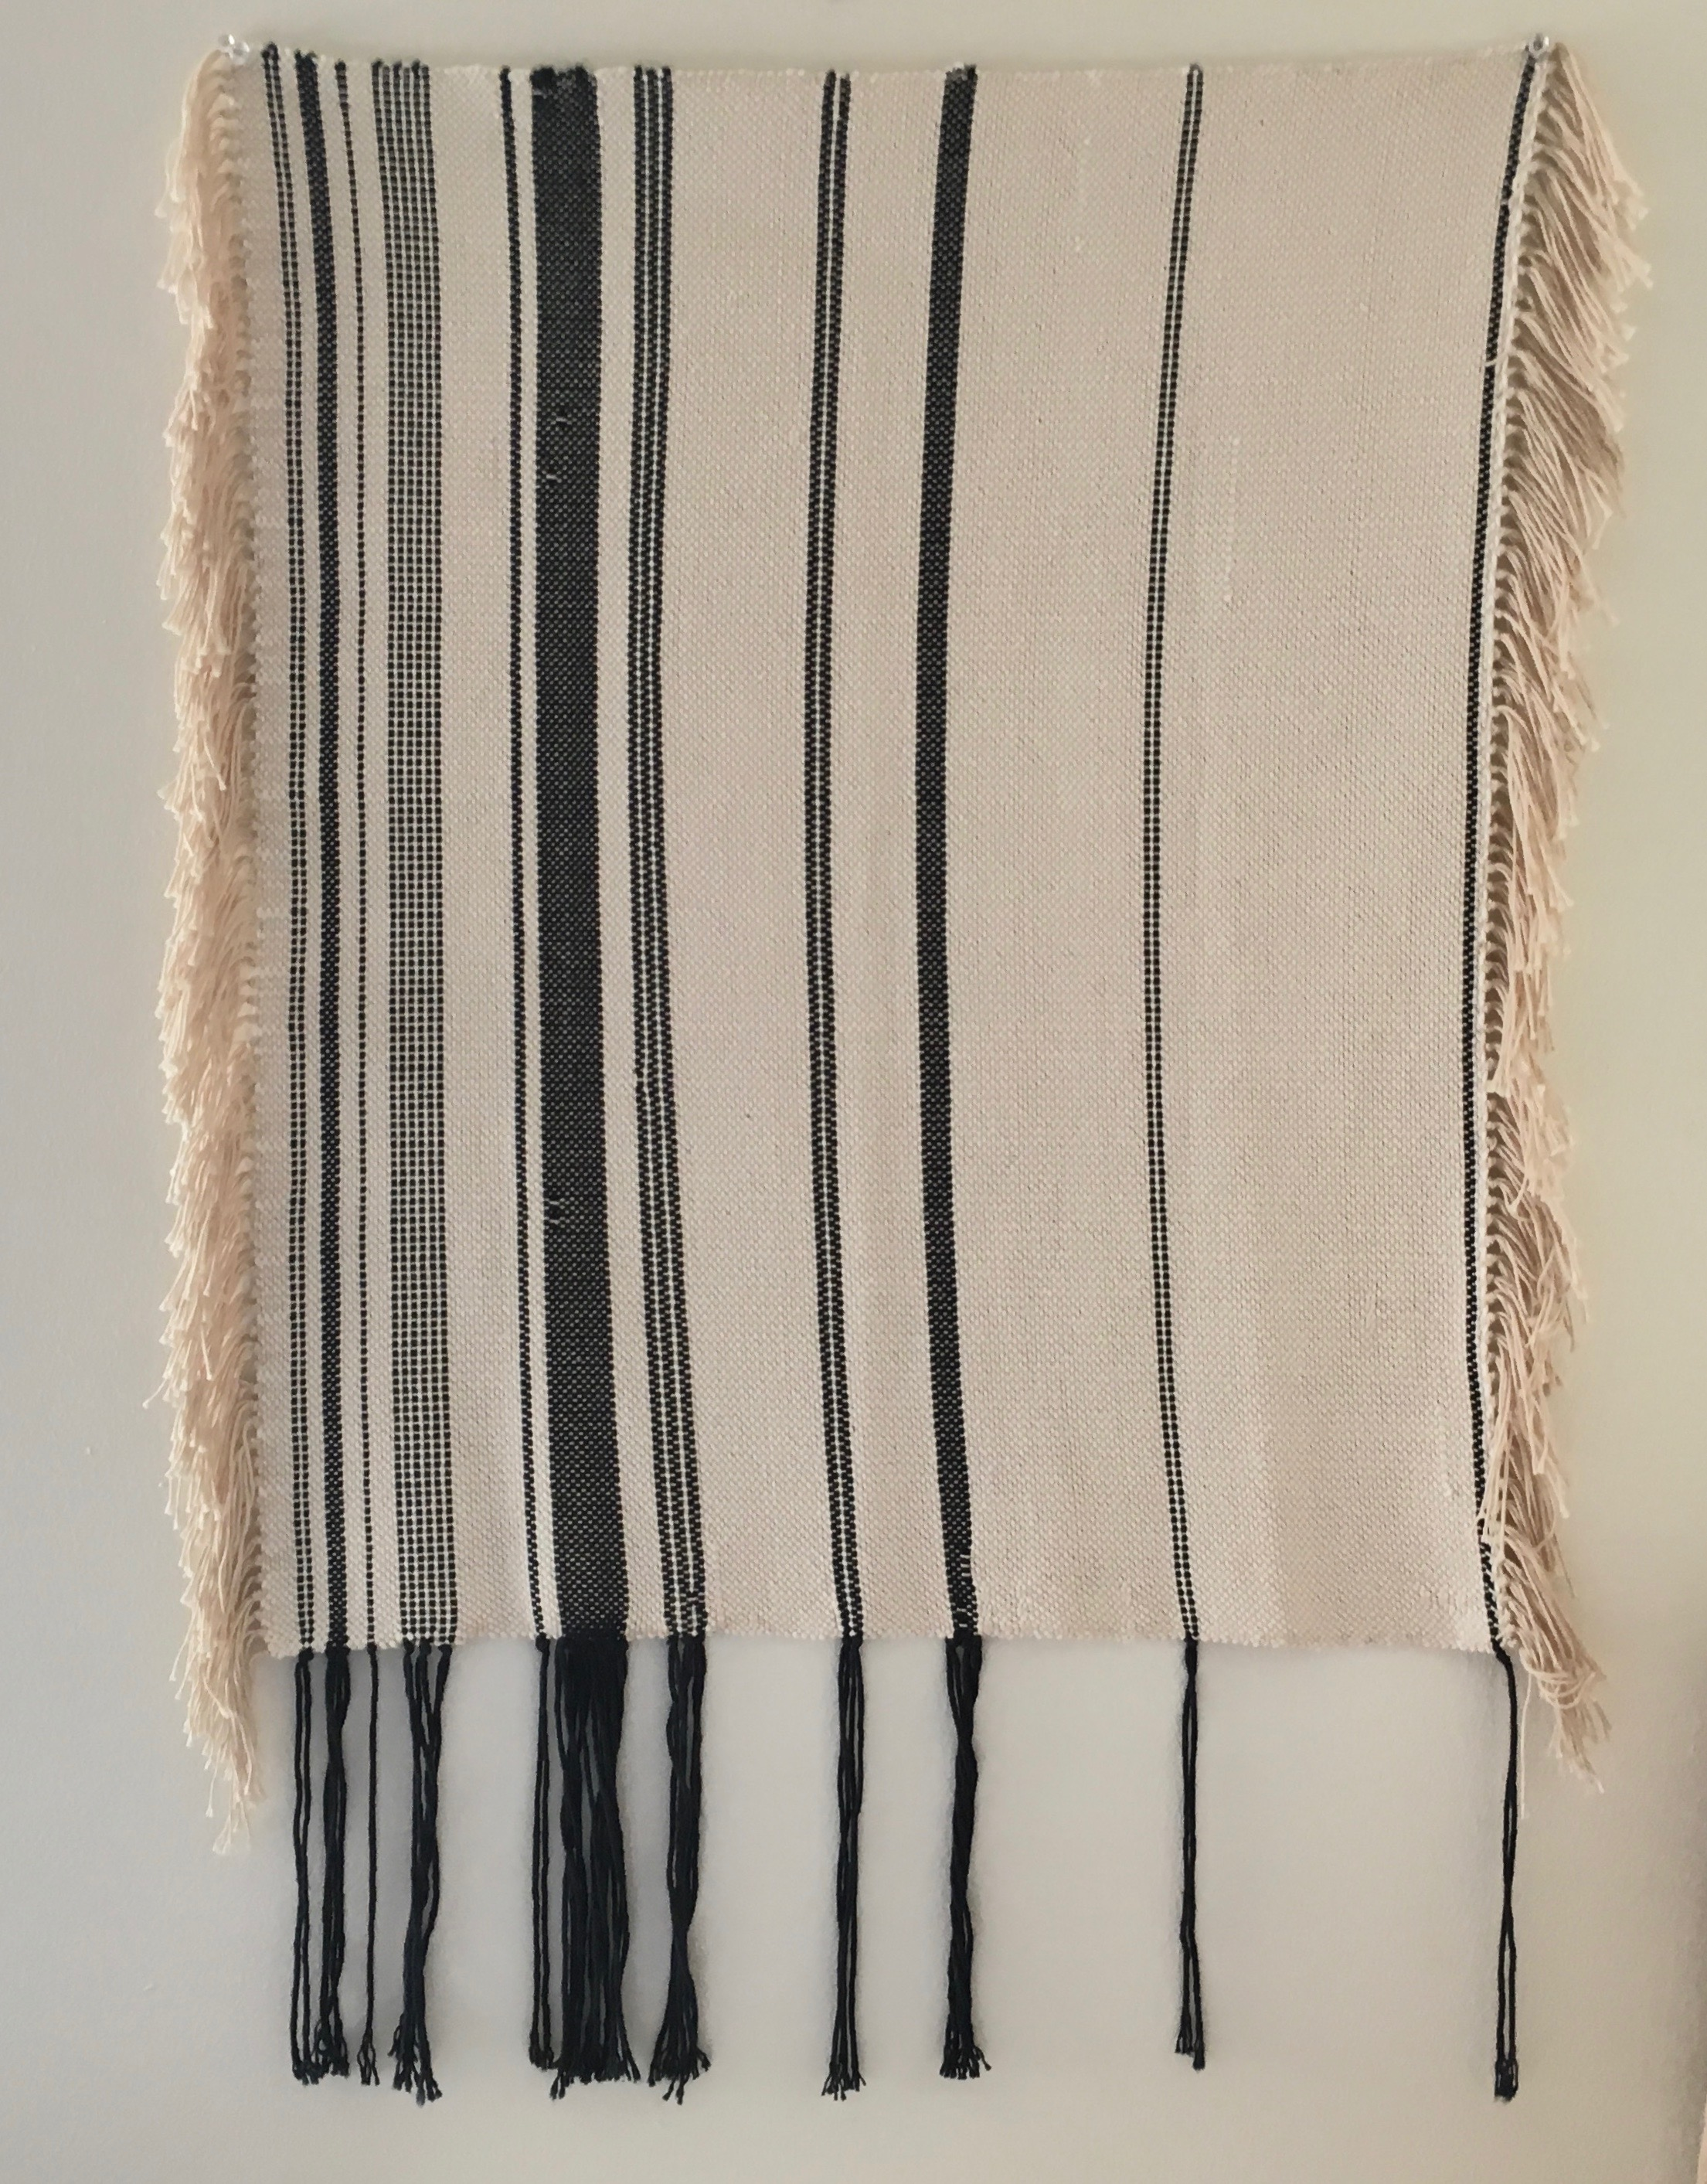 Weft Study #2, hanging weft threads